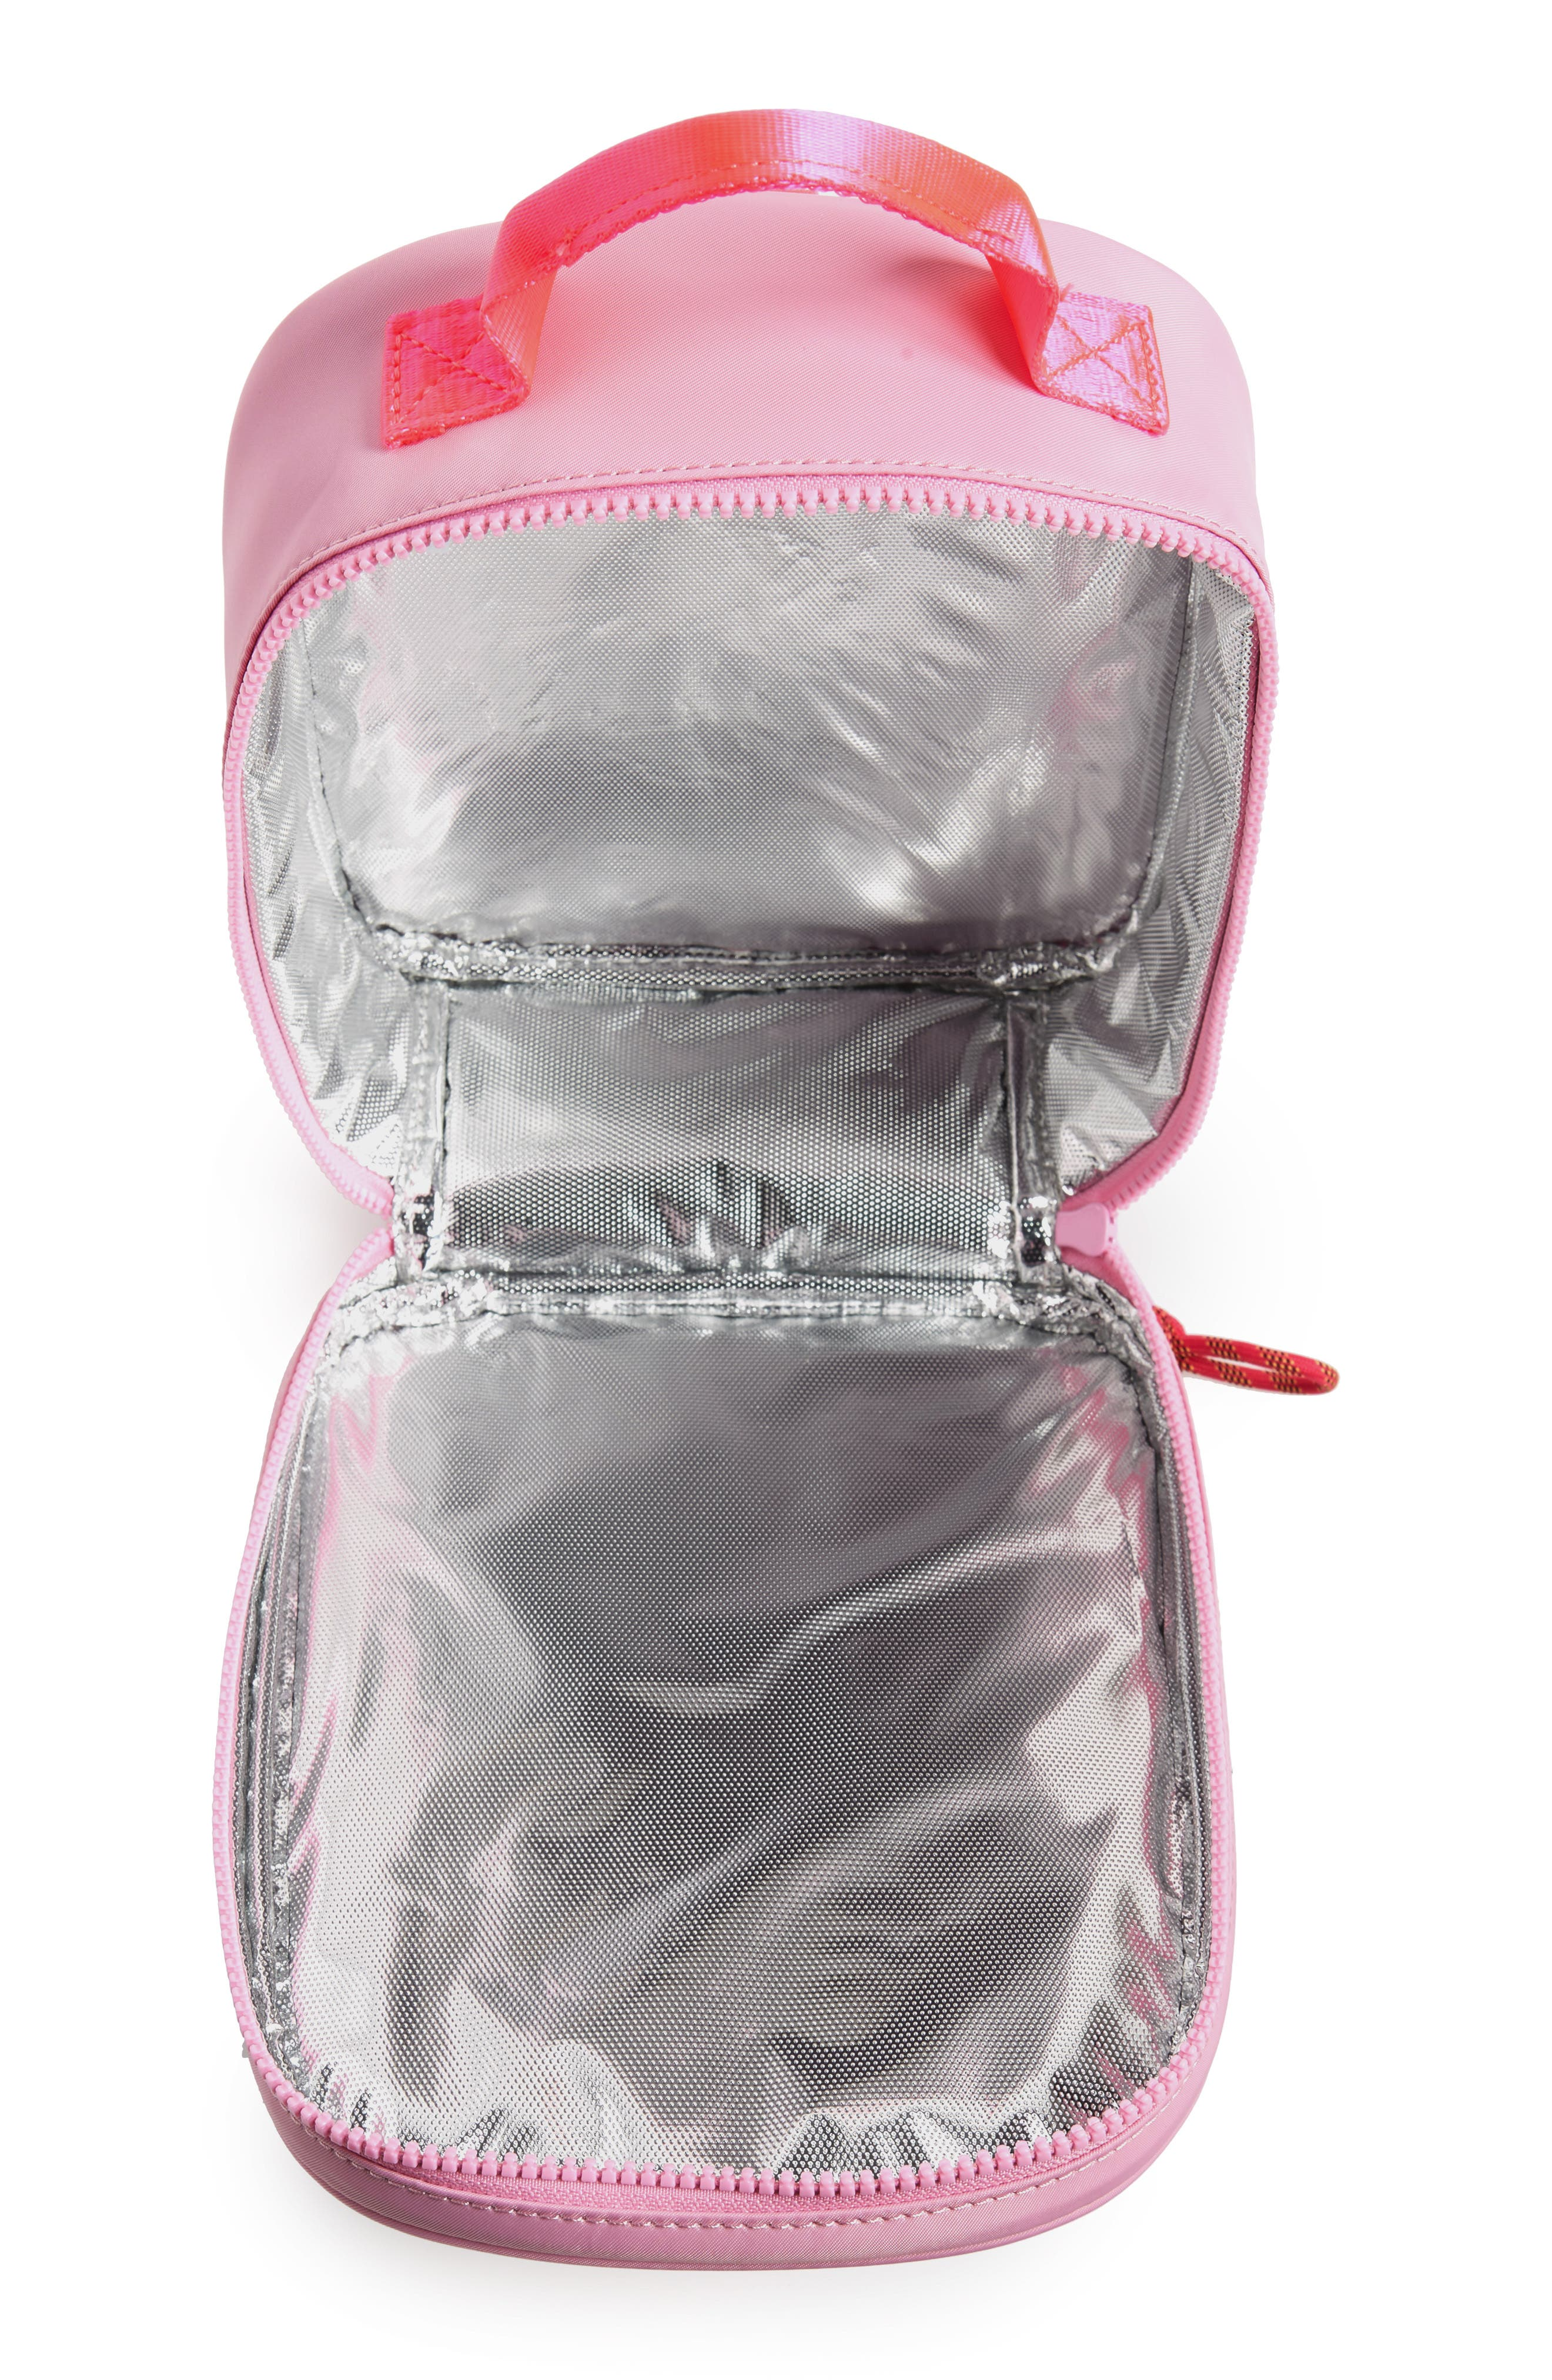 Peekaboo Cat Insulated Lunch Box,                             Alternate thumbnail 3, color,                             650